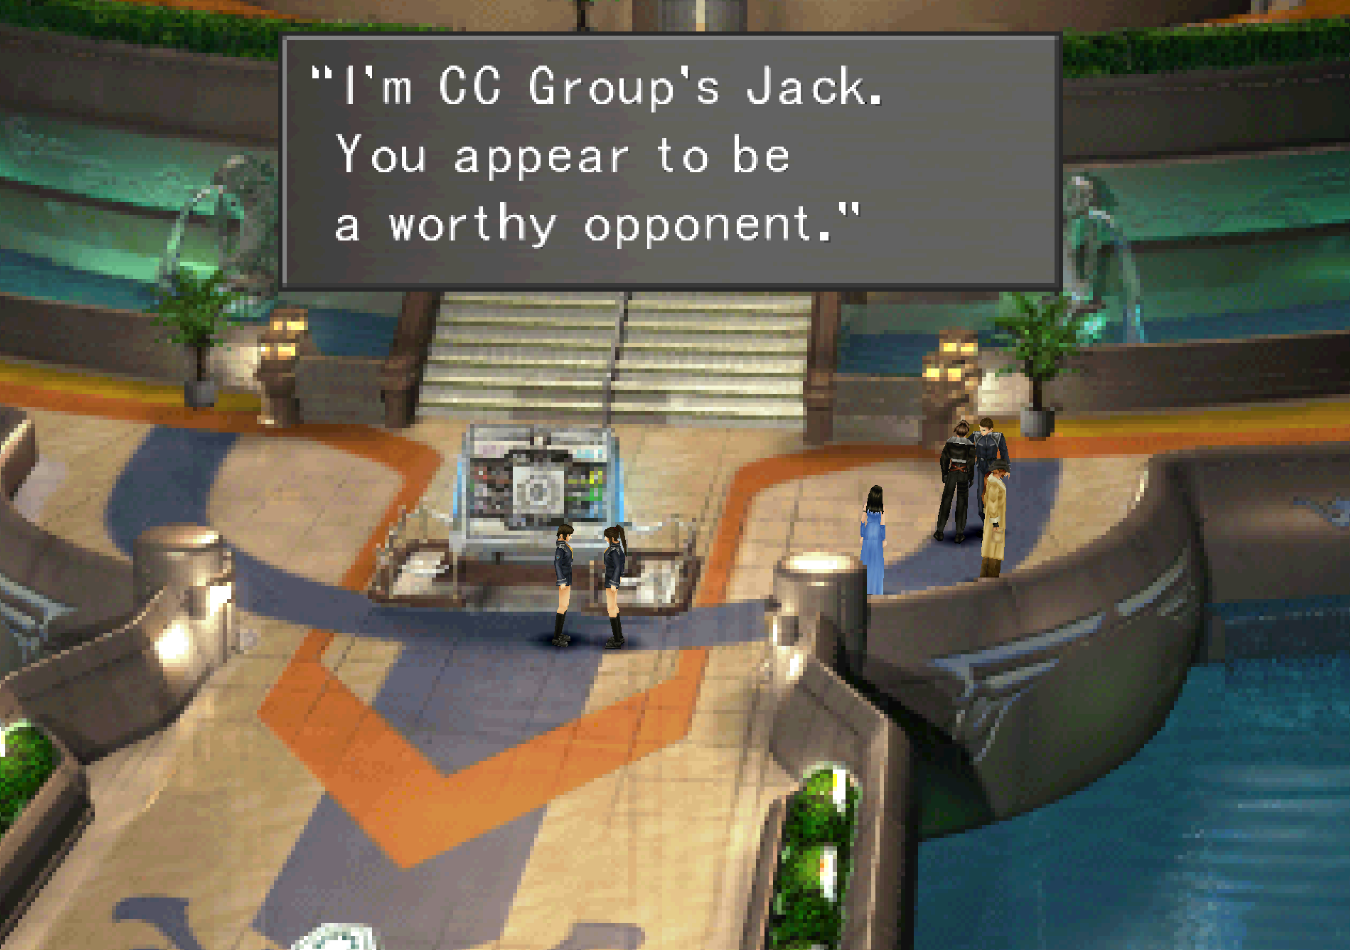 Jack in CC Group